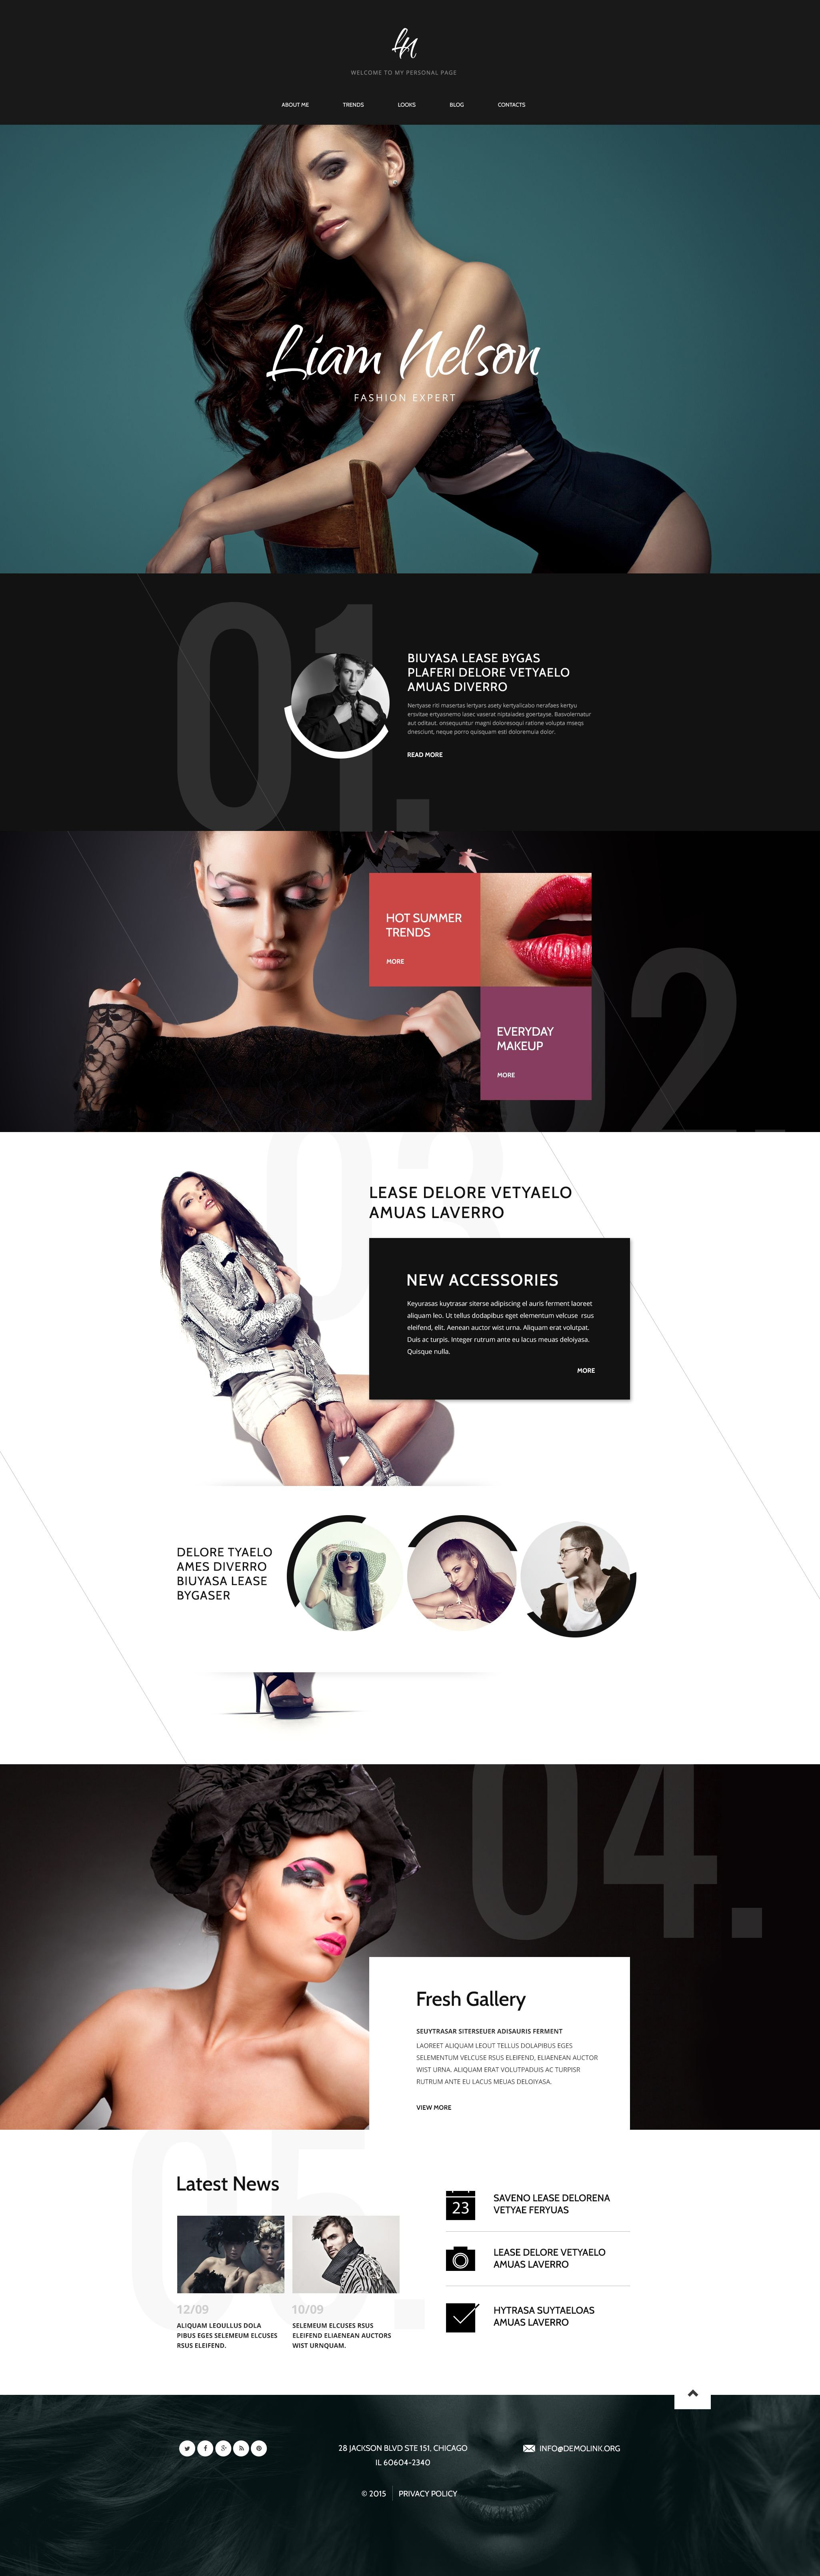 The Salon Beauty Drupal Design 53896, one of the best Drupal templates of its kind (beauty, most popular), also known as salon beauty Drupal template, cosmetic Drupal template, weight loss Drupal template, massage Drupal template, facial Drupal template, body Drupal template, style Drupal template, product Drupal template, staff Drupal template, professional Drupal template, decorative Drupal template, foundation Drupal template, cream care Drupal template, lipstick Drupal template, mascara Drupal template, powder Drupal template, rouge Drupal template, skin Drupal template, perfume Drupal template, makeup Drupal template, education Drupal template, consultation Drupal template, research Drupal template, technology Drupal template, special offer Drupal template, fashion Drupal template, hydrother and related with salon beauty, cosmetic, weight loss, massage, facial, body, style, product, staff, professional, decorative, foundation, cream care, lipstick, mascara, powder, rouge, skin, perfume, makeup, education, consultation, research, technology, special offer, fashion, hydrother, etc.